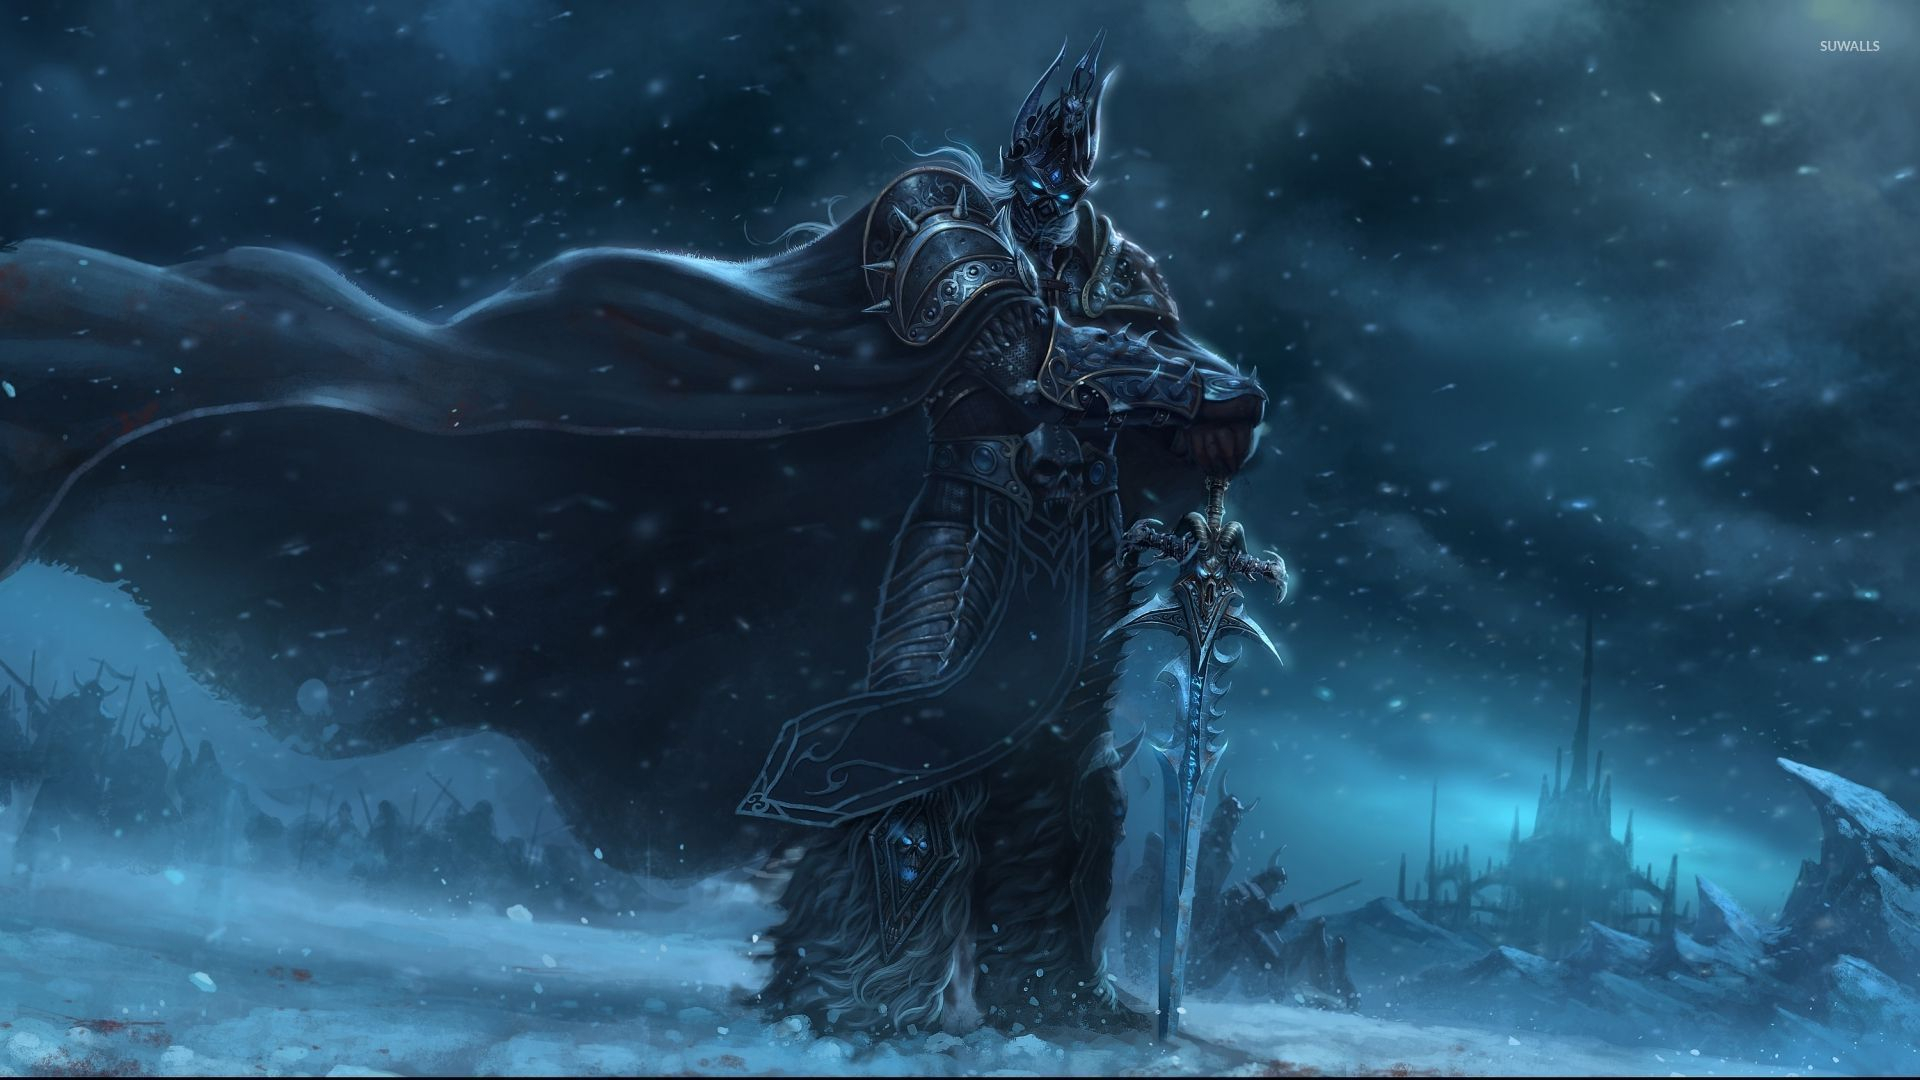 the lich king wallpaper - game wallpapers - #31960